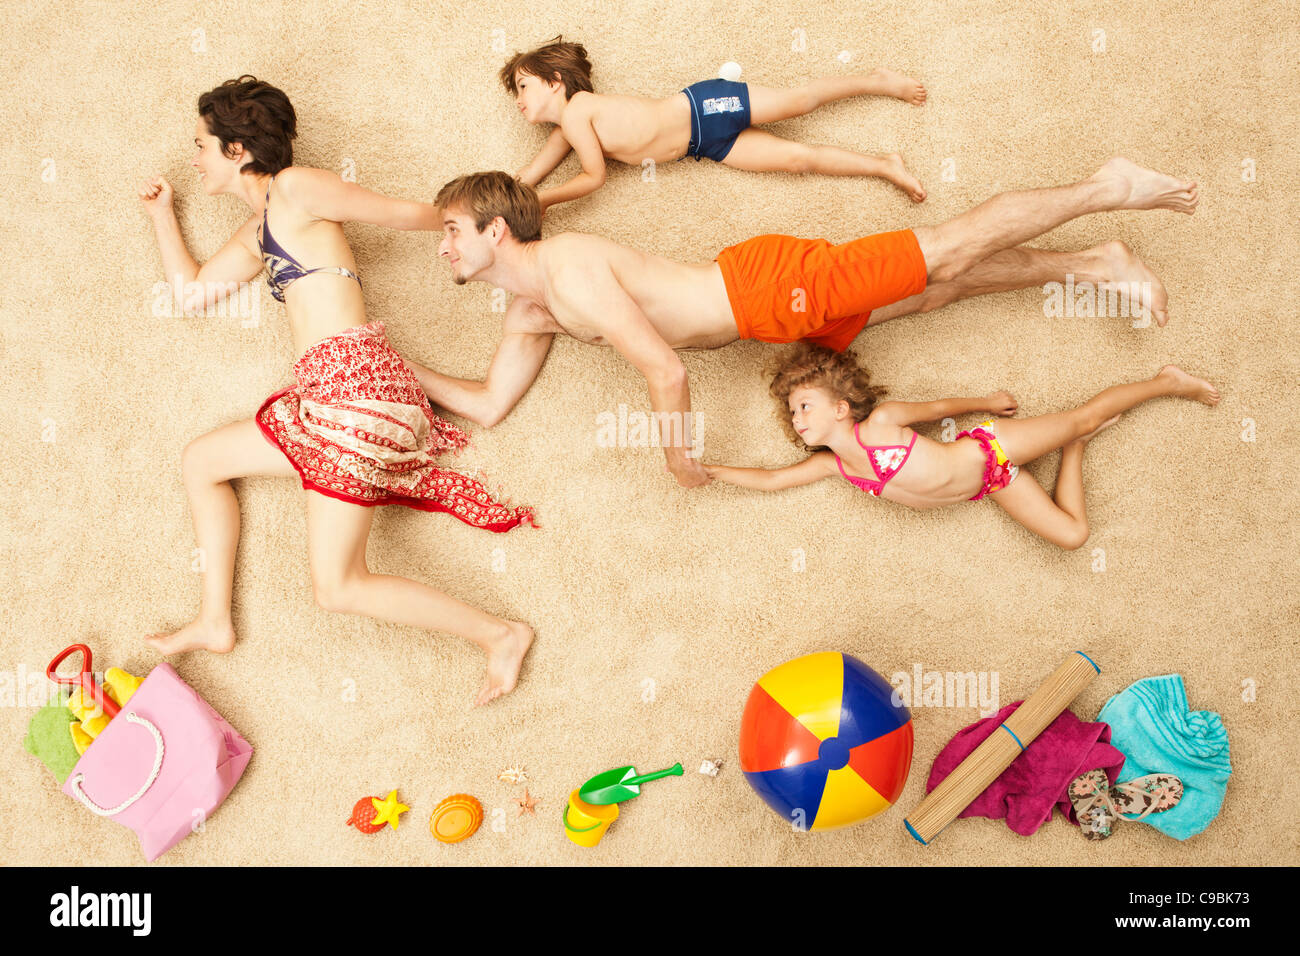 Germany, Artificial beach scene with family and beach toys - Stock Image